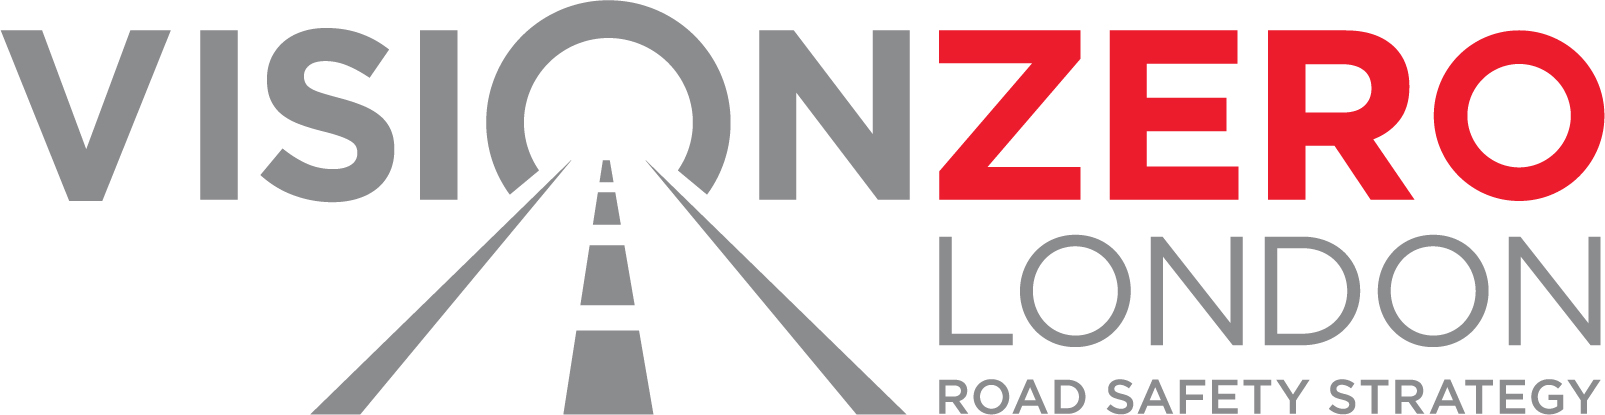 vision zero london road safety strategy